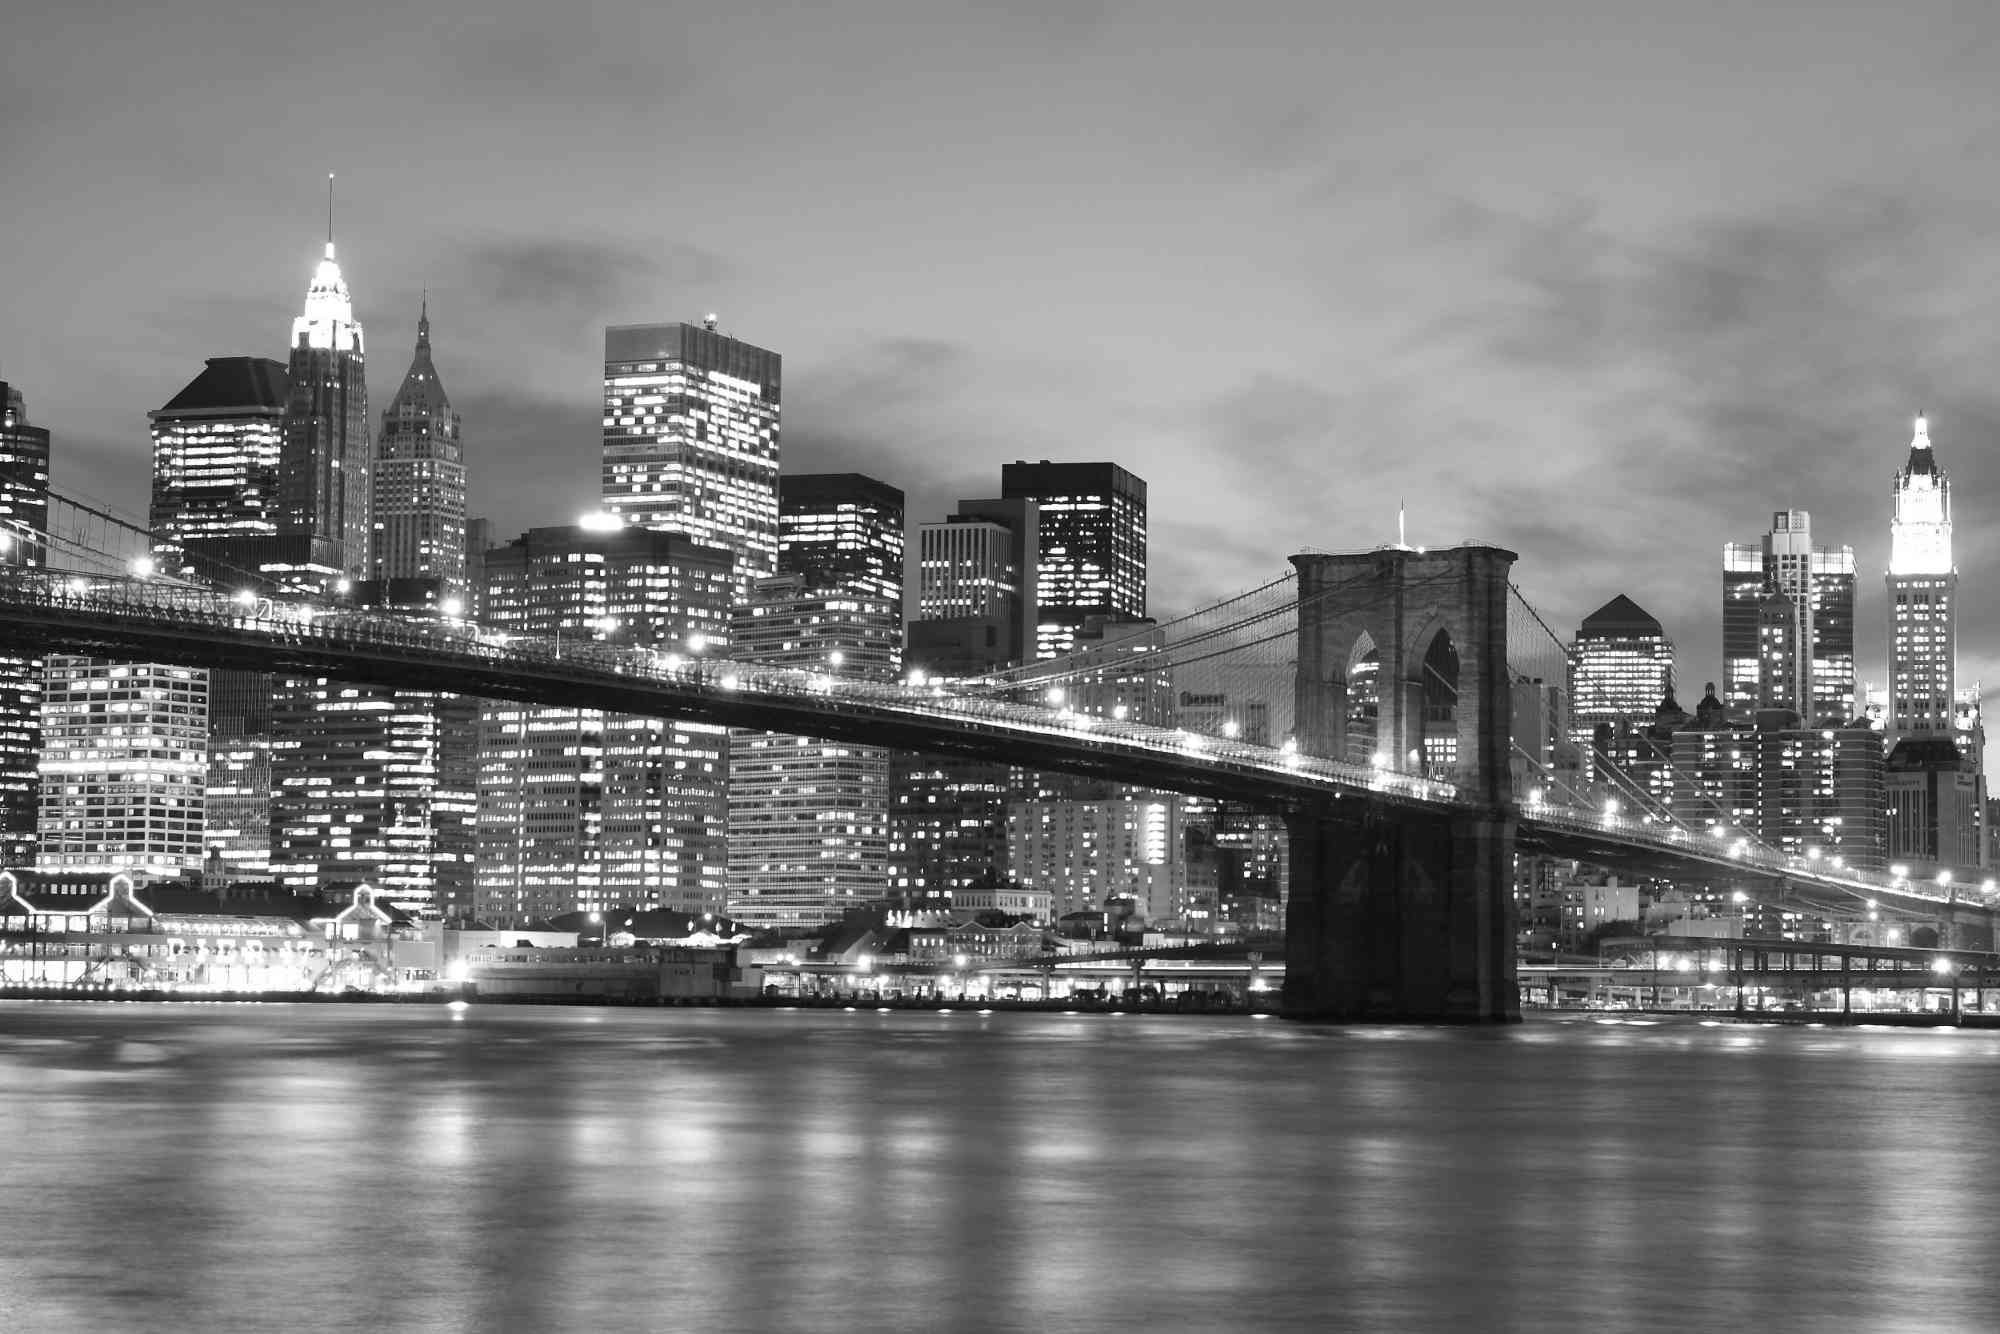 13.5-Feet wide by 9-Feet high. Prepasted wallpaper from a high resolution photo of: Brooklyn Bridge at Night (Black and White). Easy to hang remove and reuse (hang again) If U do as in our video